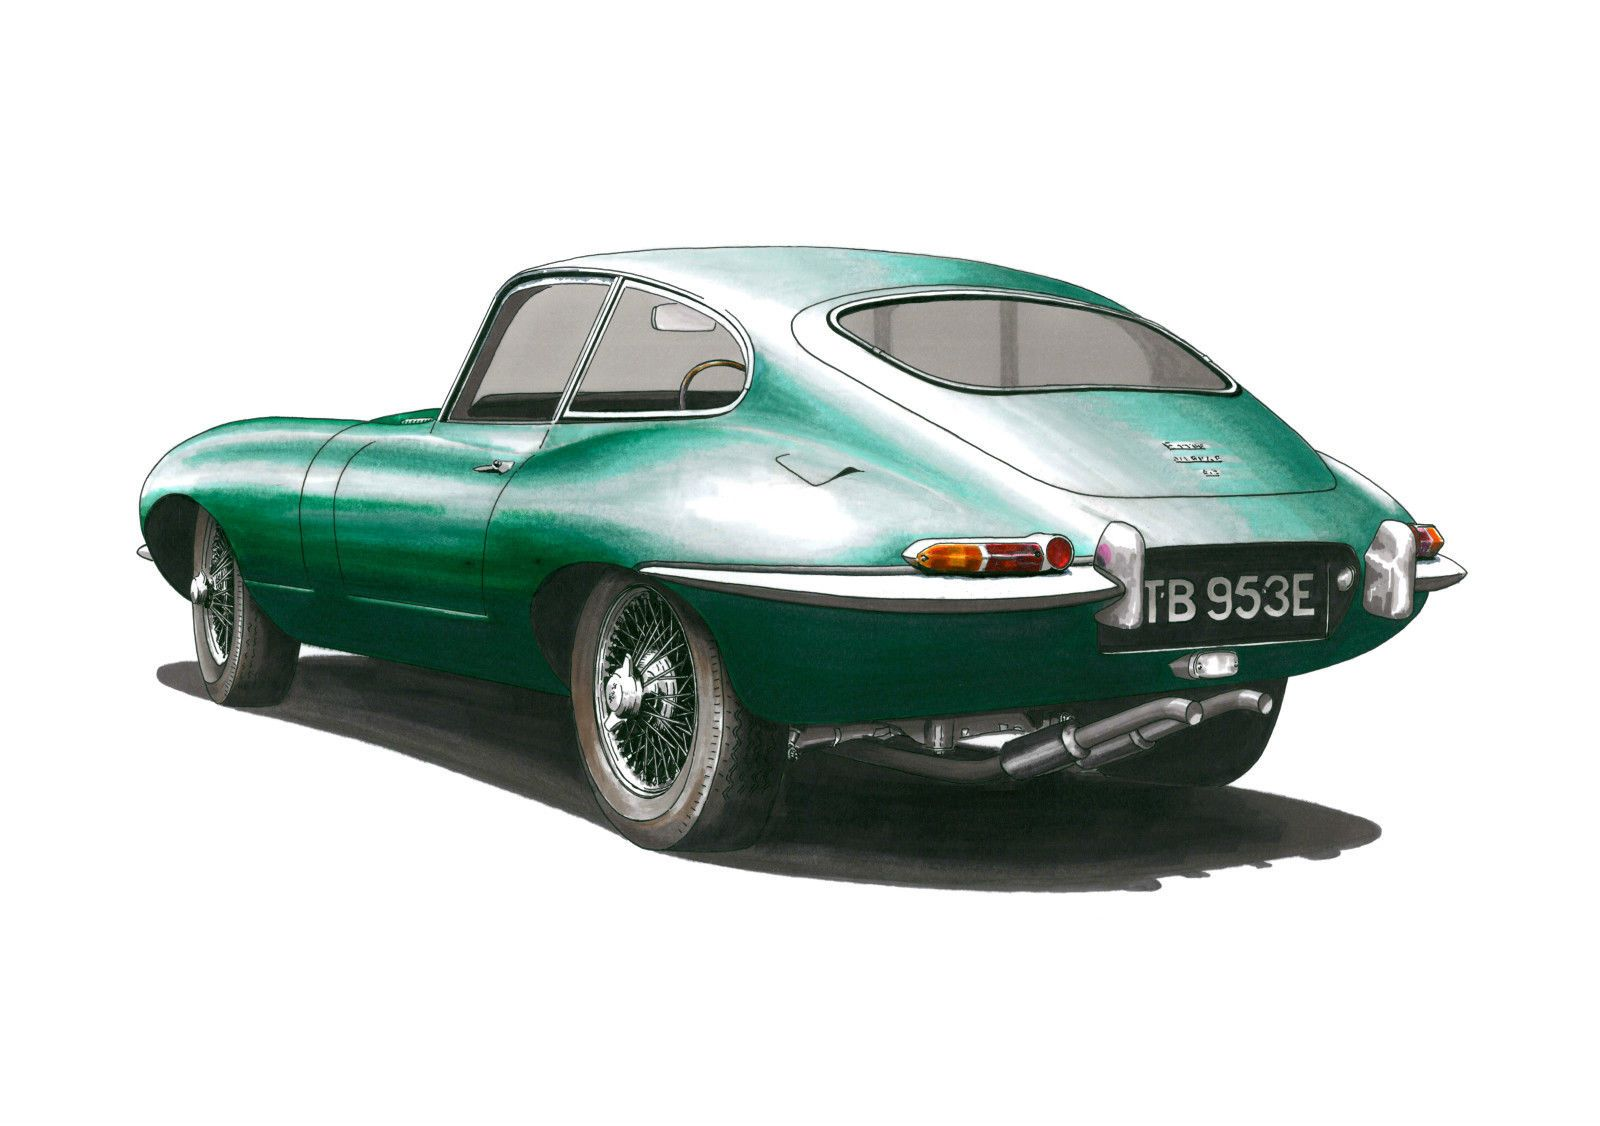 Jaguar E-Type Series 1 Fixed Head Coupe POSTER PRINT A1 size | eBay